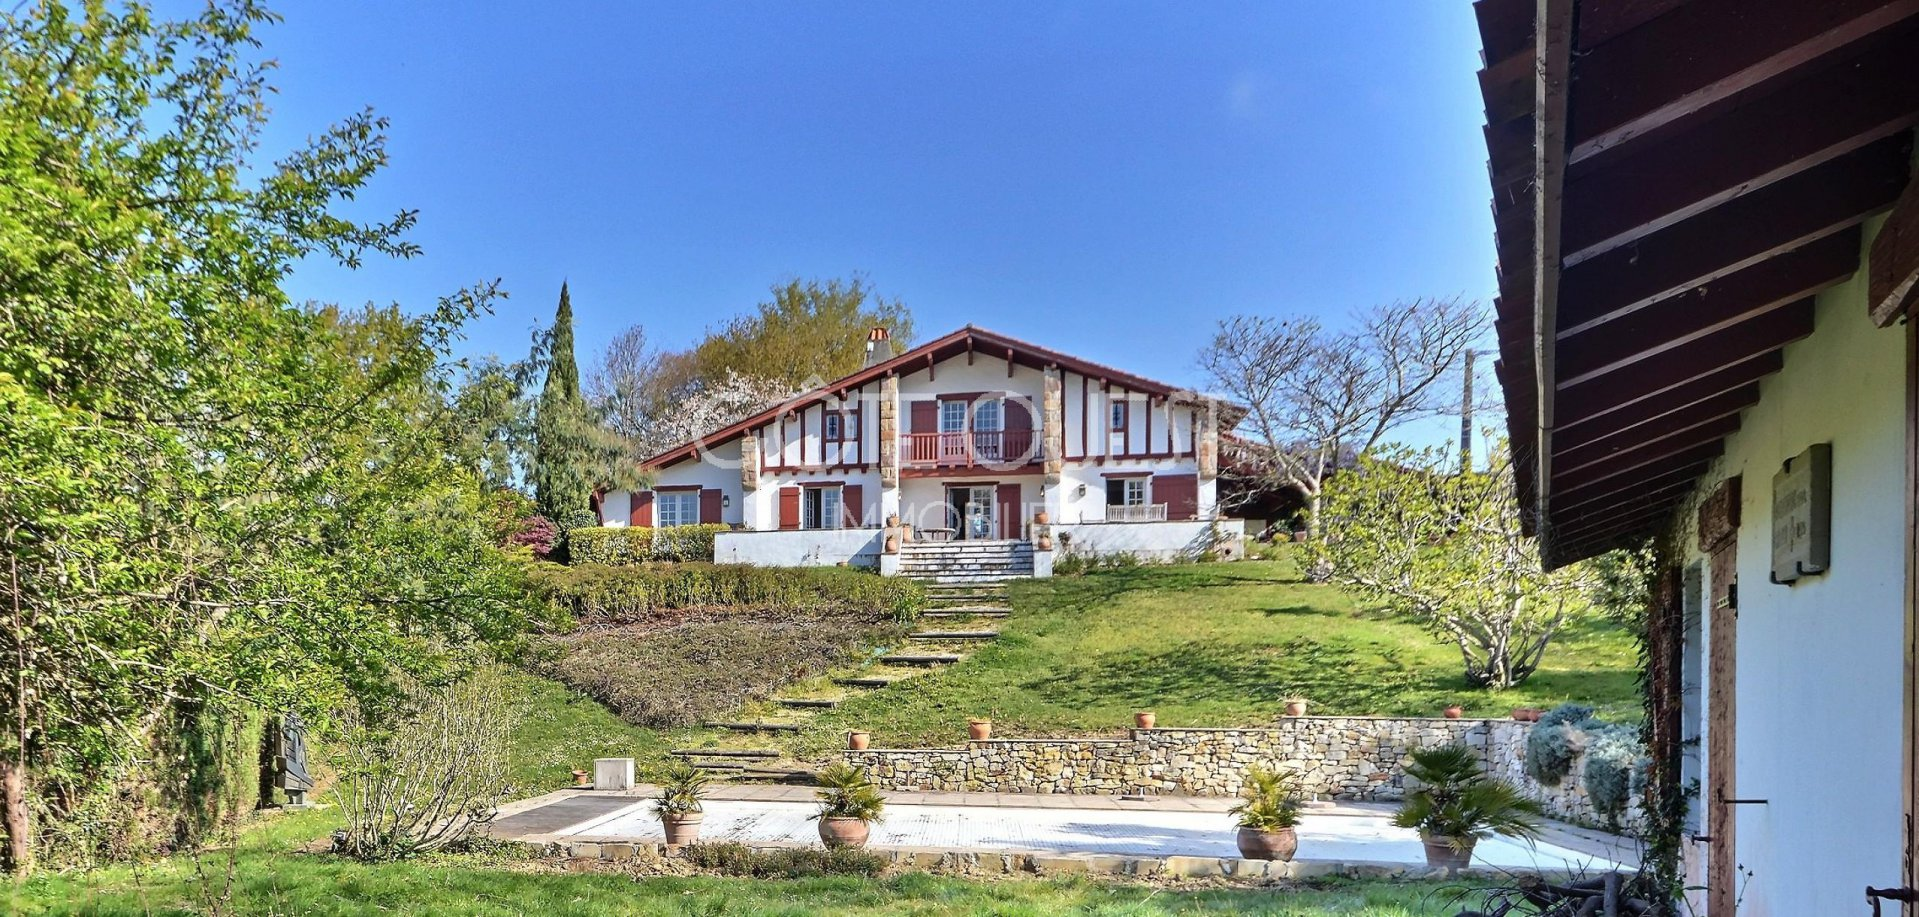 ARCANGUES. A TYPICAL BASQUE-STYLE PROPERTY WITH A SWIMMING POOL AND ENJOYING A VIEW OF THE ICONIC RHUNE MOUNTAIN